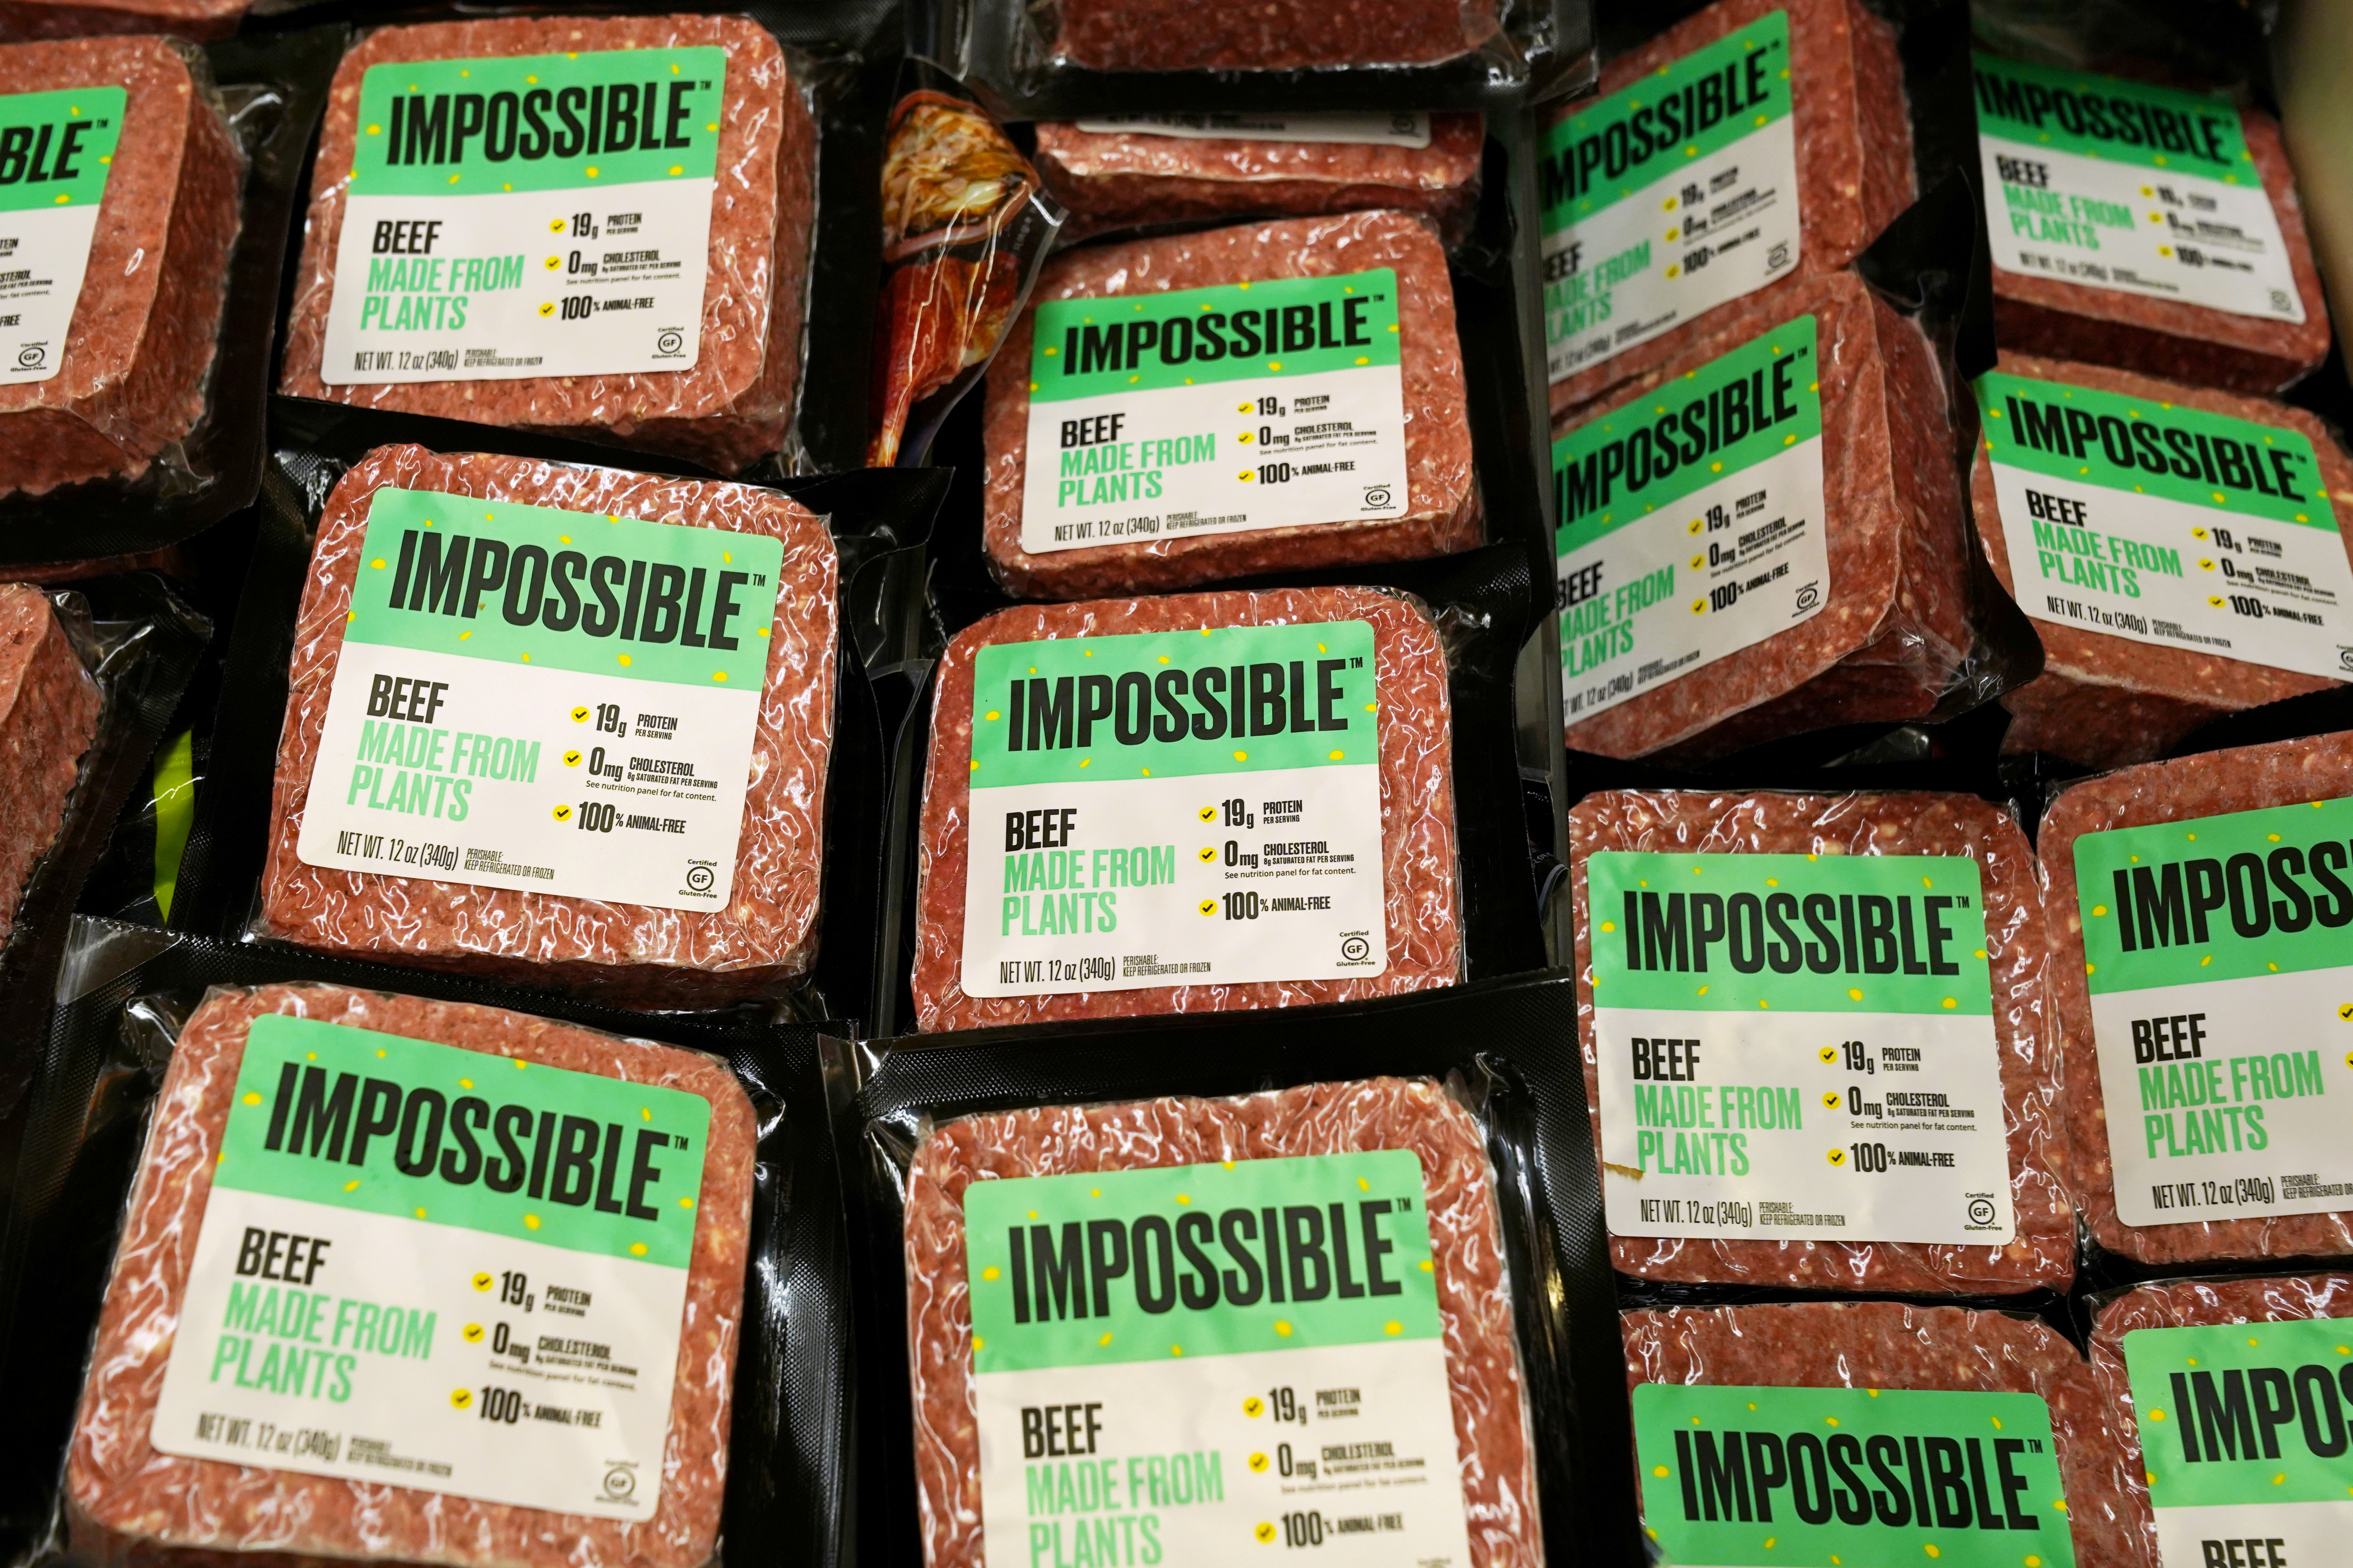 Impossible Foods plant-based beef products are seen inside a refrigerator at the meat section of a chain supermarket in Hong Kong, China, October 20, 2020. REUTERS/Lam Yik/File Photo